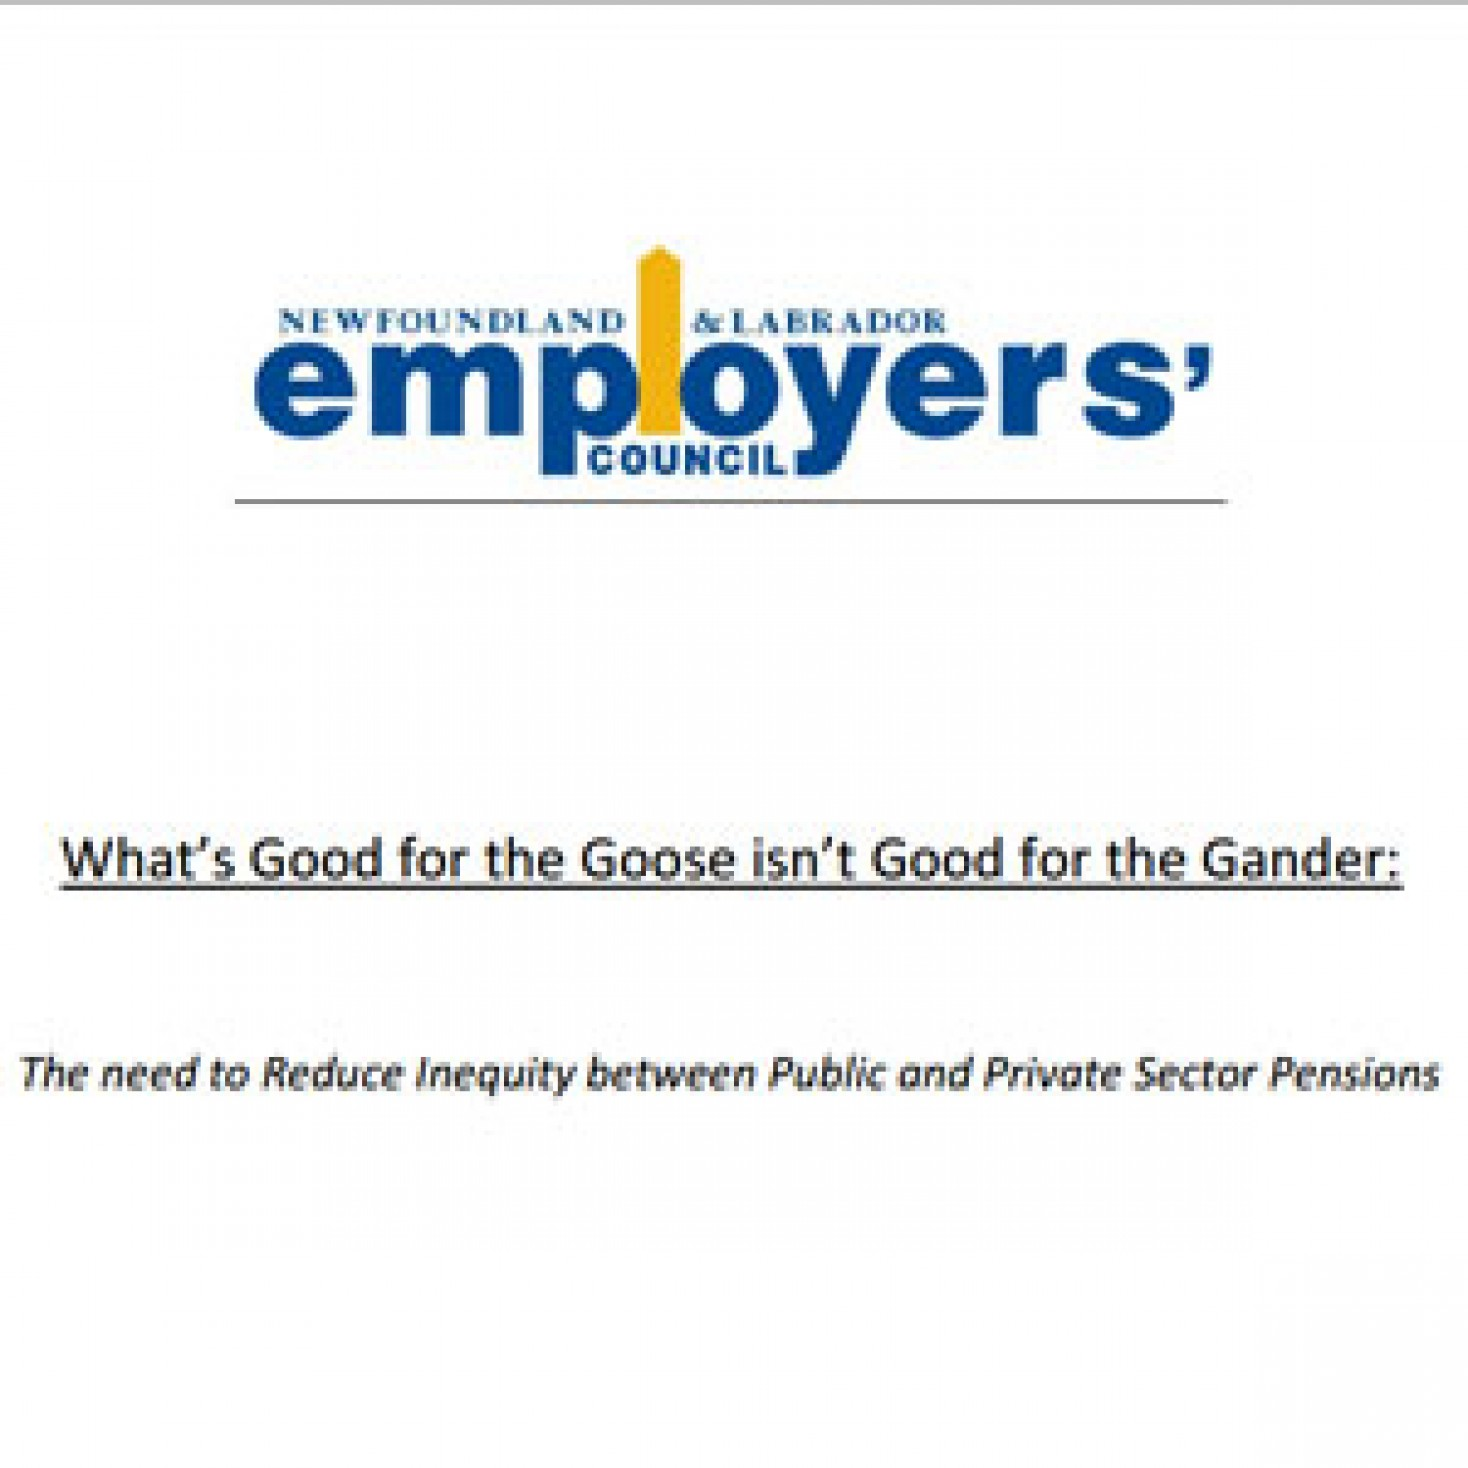 What's Good for the Goose isn't Good for the Gander: The need to reduce inequity between public and private sector pensions